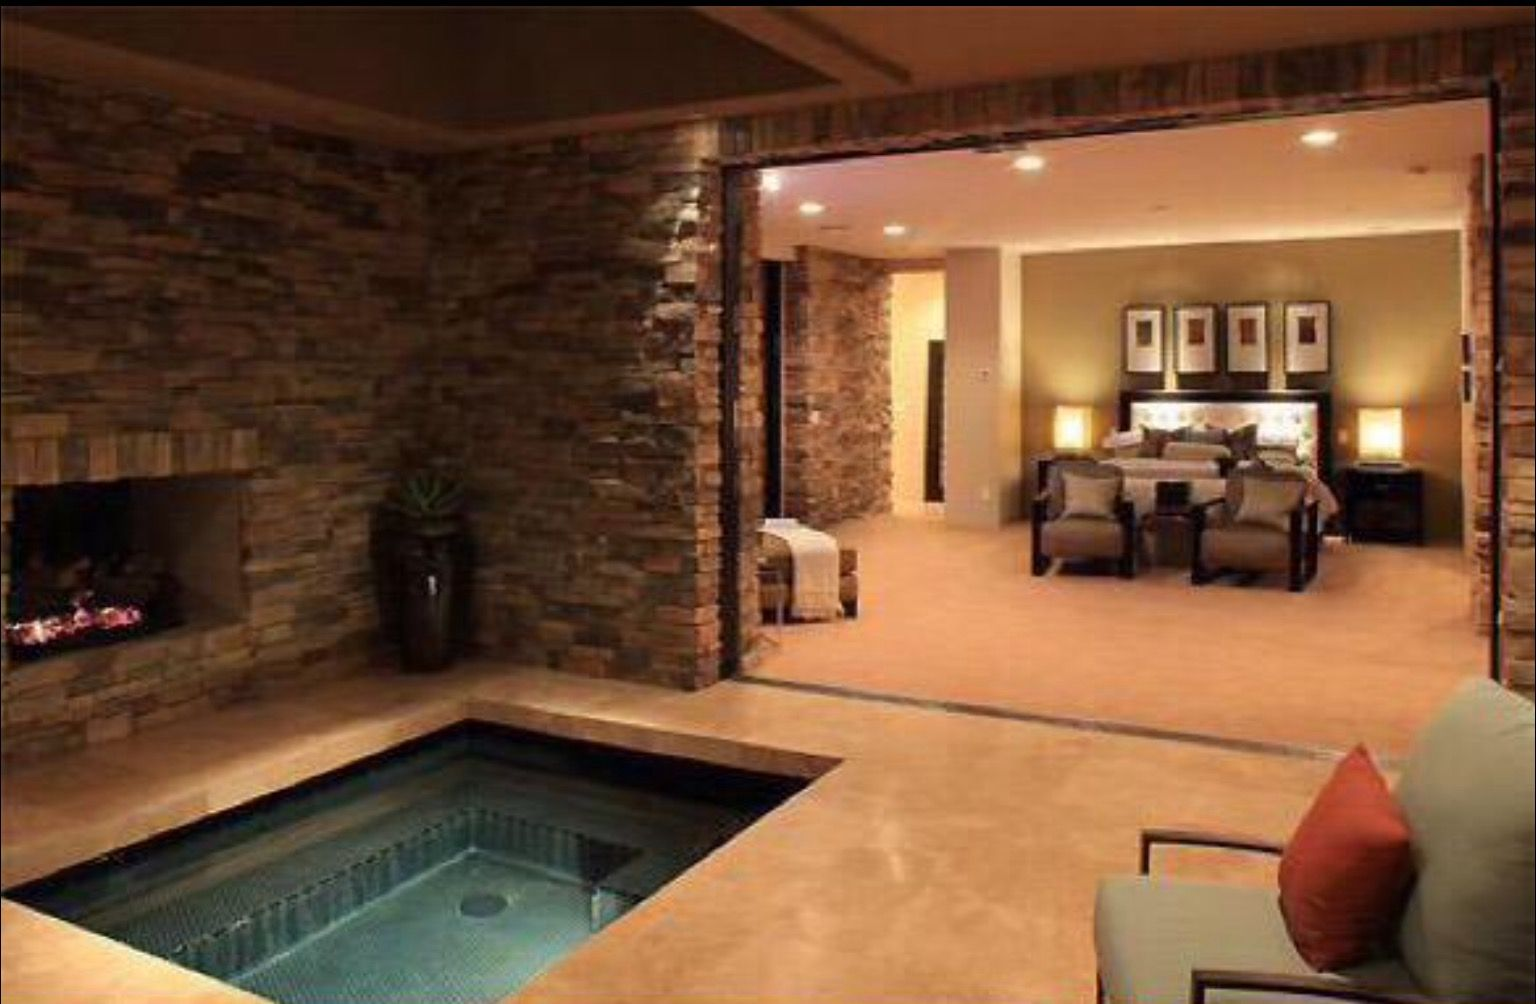 Master bedroom with hot tub and fireplace  home  Pinterest  Hot